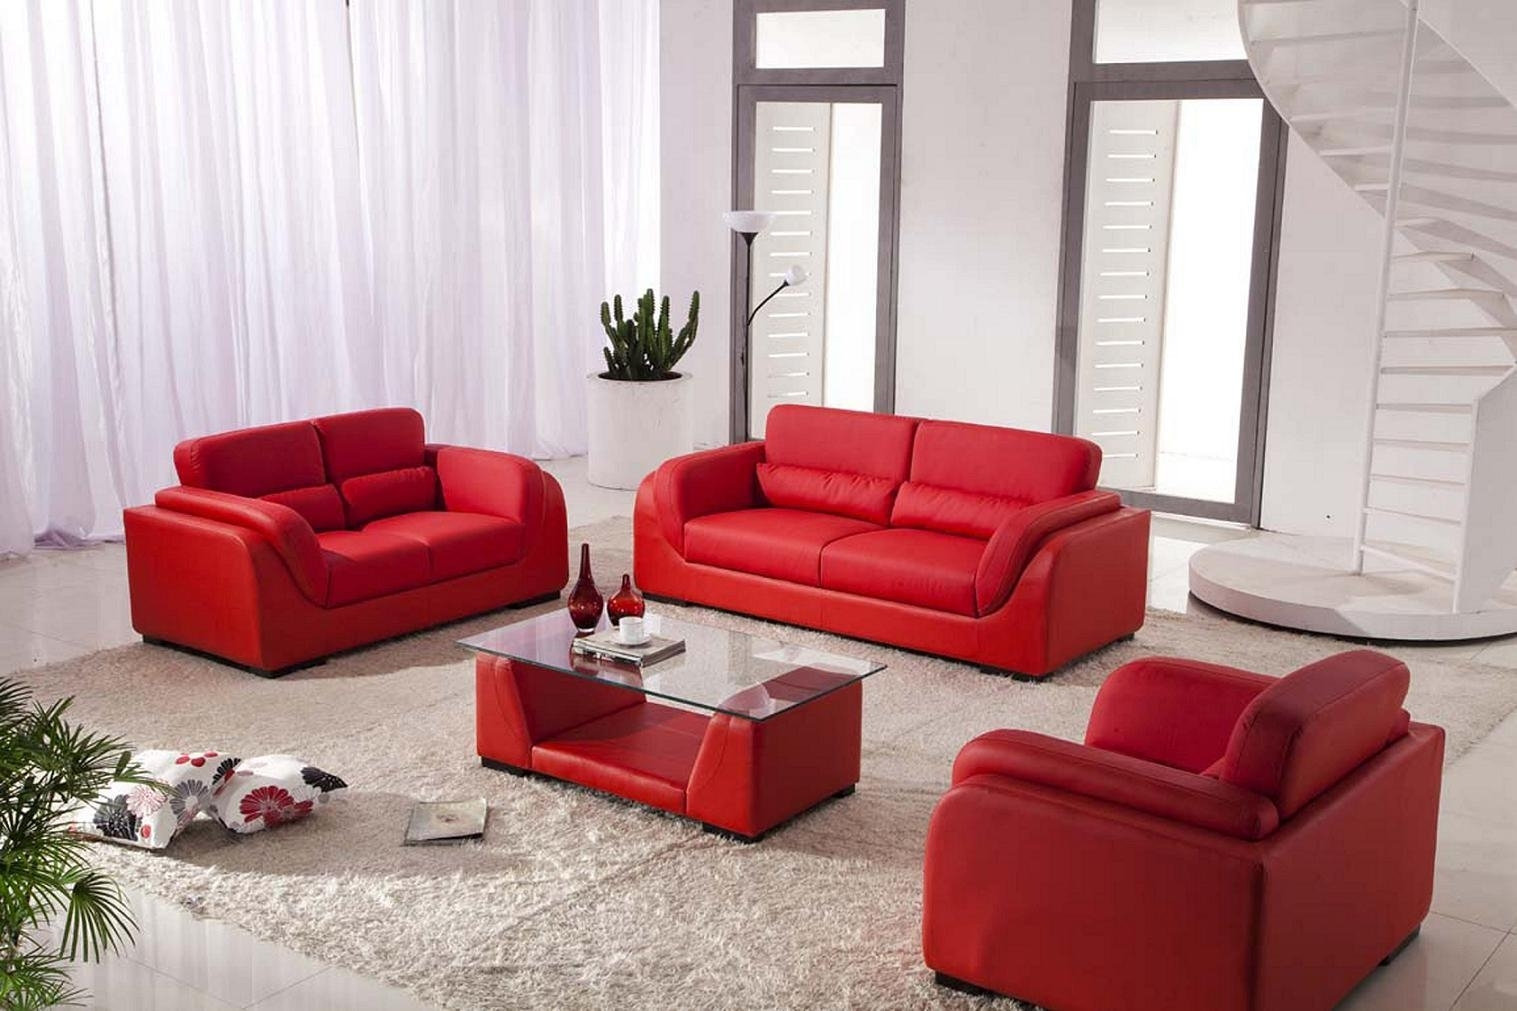 Red Leather Reclining Sleeper Sofa In Light Brown Living Room in Red Leather Couches For Living Room (Image 9 of 15)